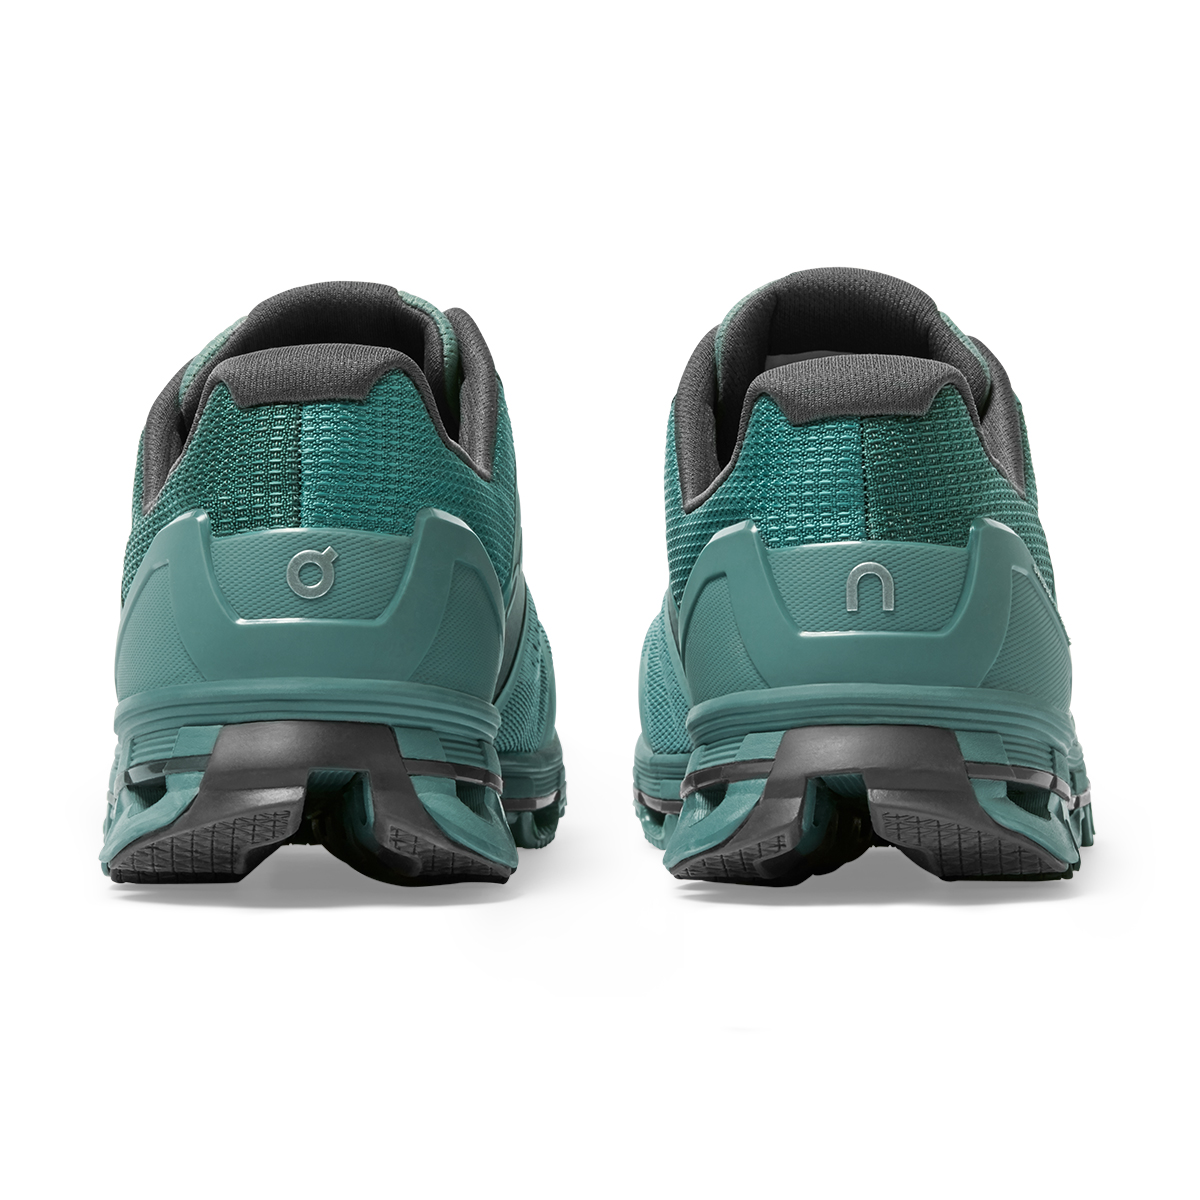 Men's On Cloudace Running Shoe - Color: Sea/Shadow - Size: 7 - Width: Regular, Sea/Shadow, large, image 4